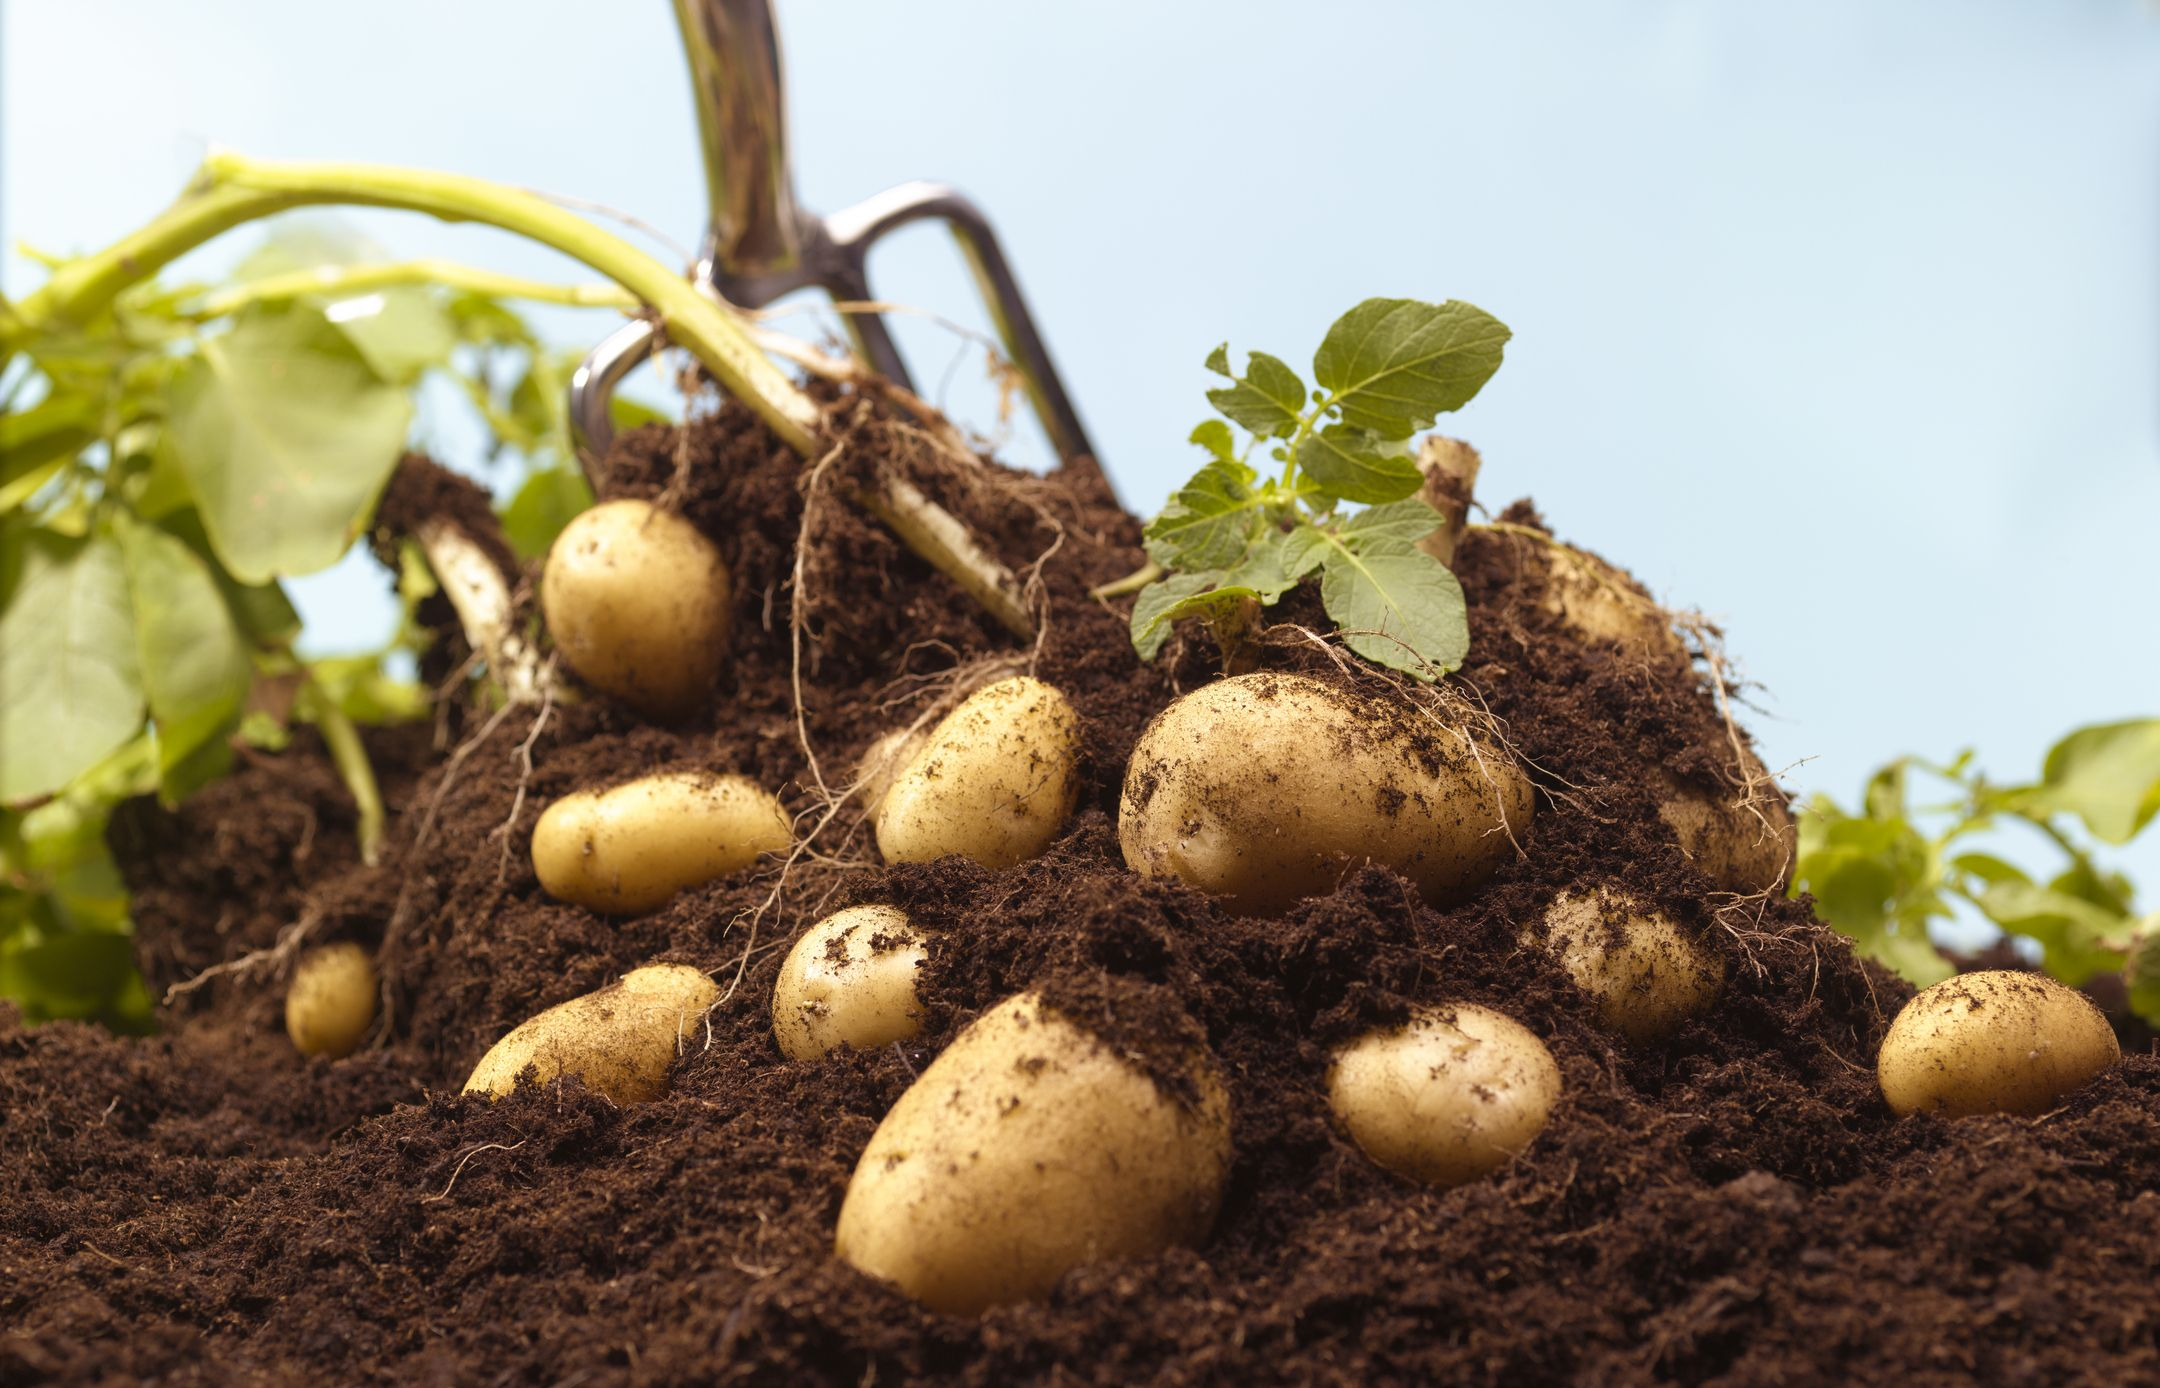 How To Grow Potatoes At Home The Essential Guide To Improve Your Harvest Vilee